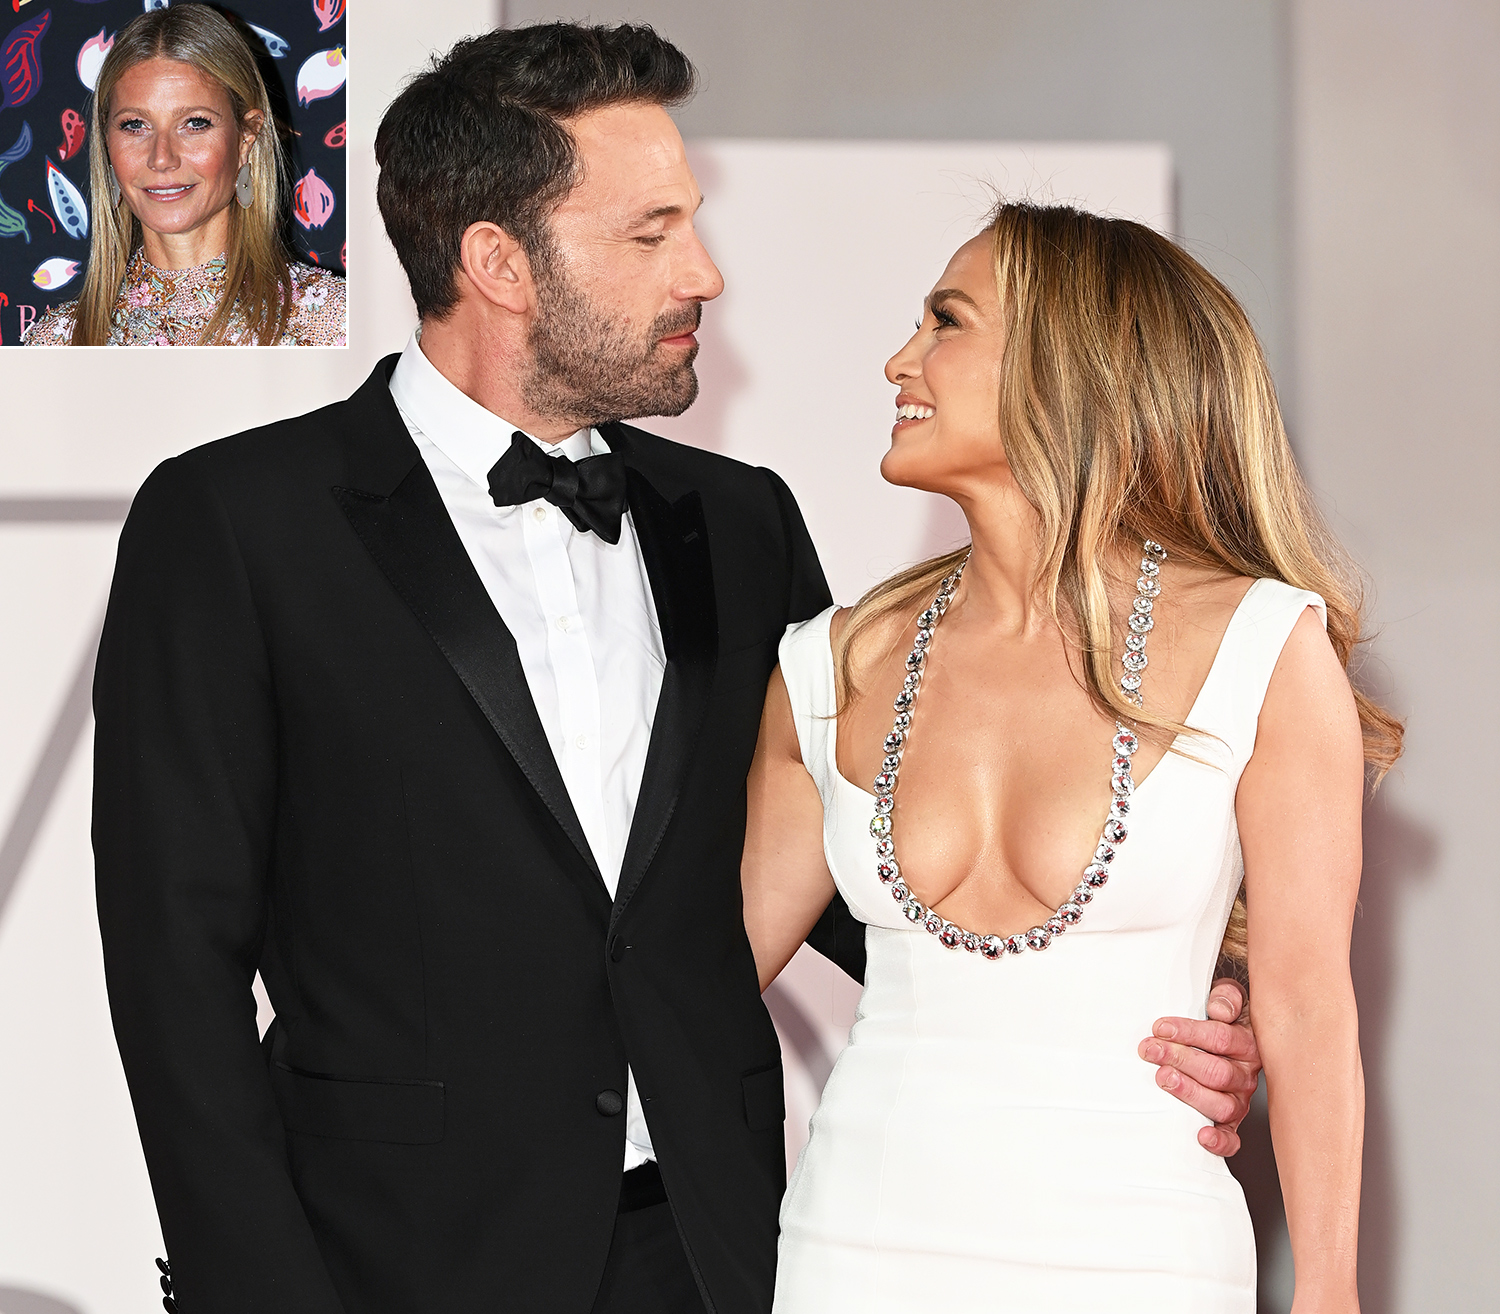 Gwyneth Paltrow Gives Ex Ben Affleck and Jennifer Lopez Her Seal of Approval: 'This Is Cute'